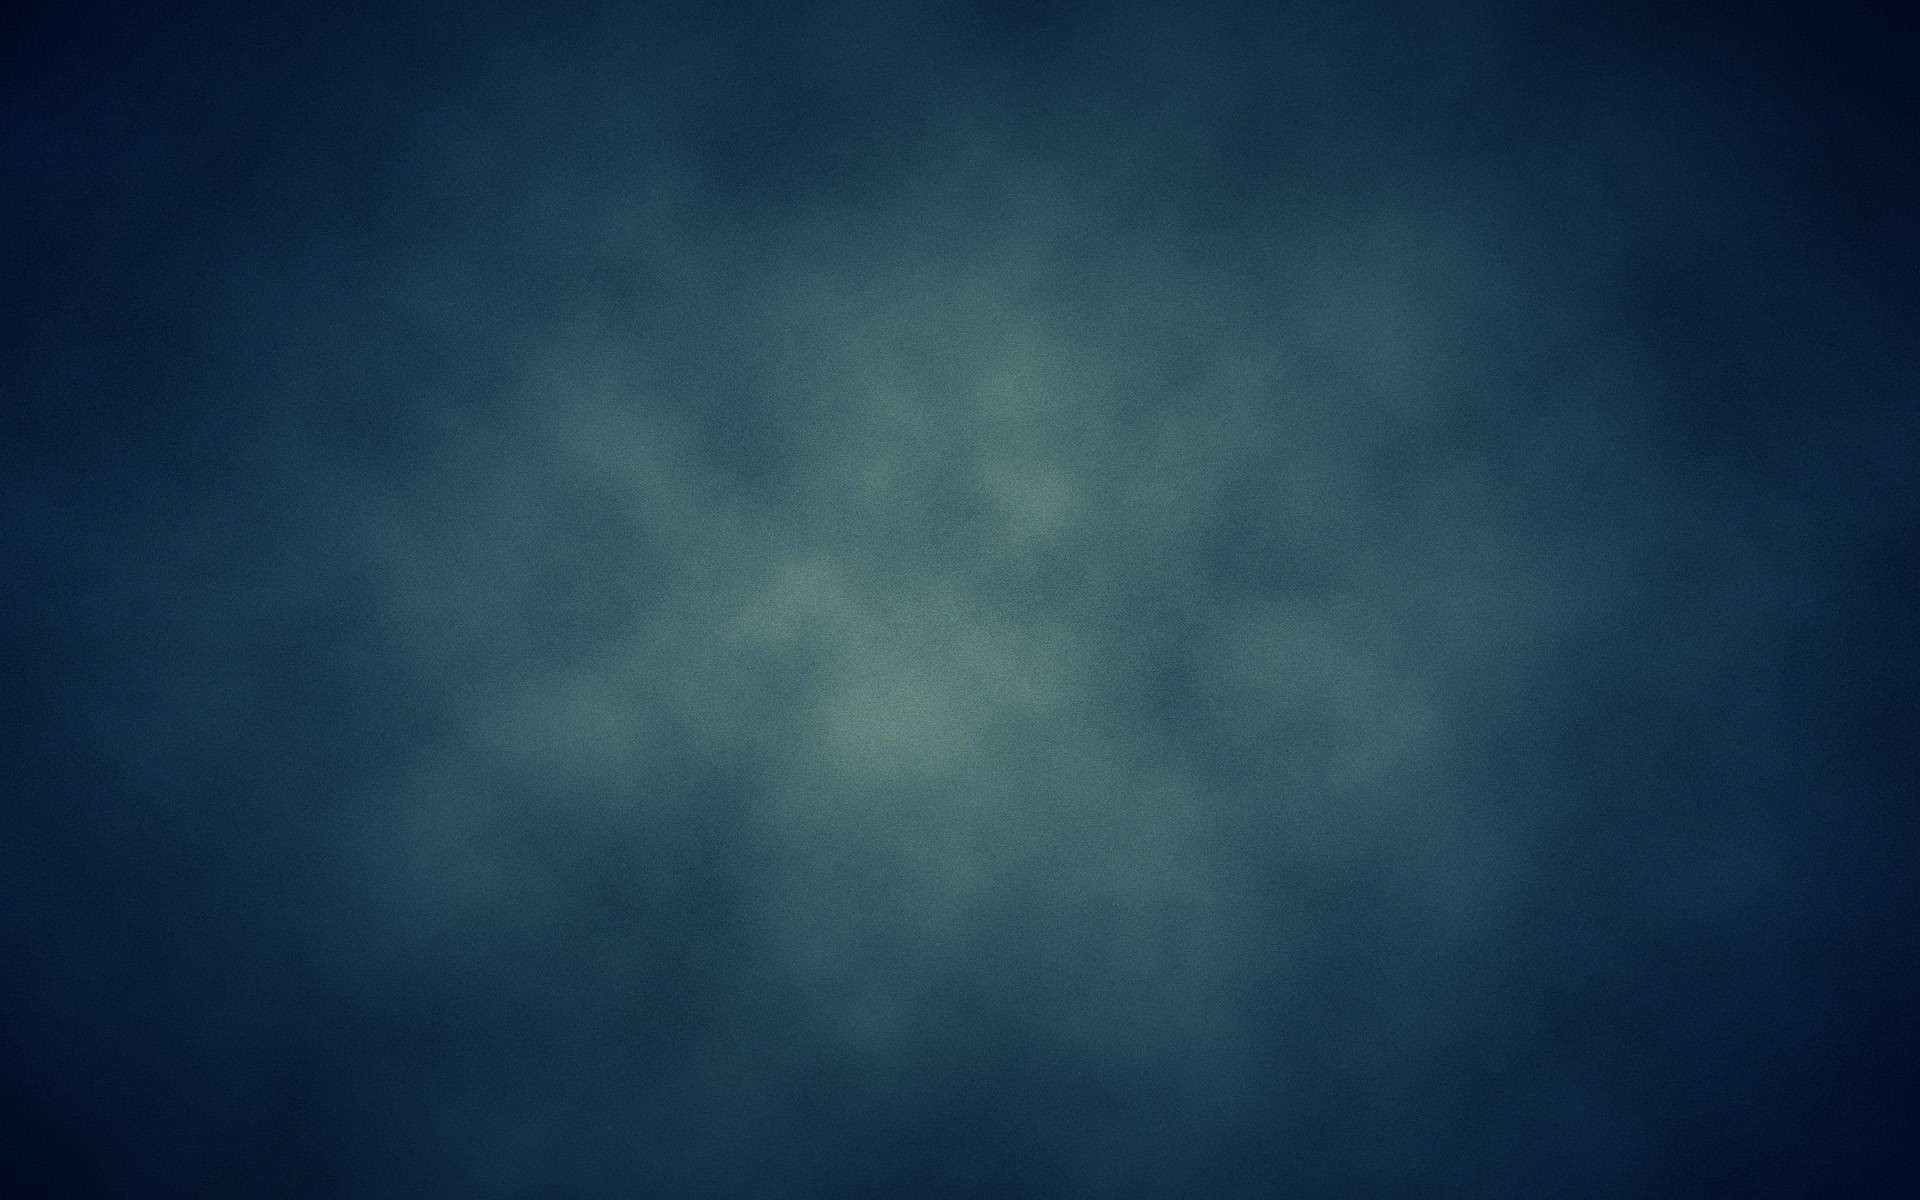 Download Cloud Custom Texture Blue Users Greerrrr Wallpaper .